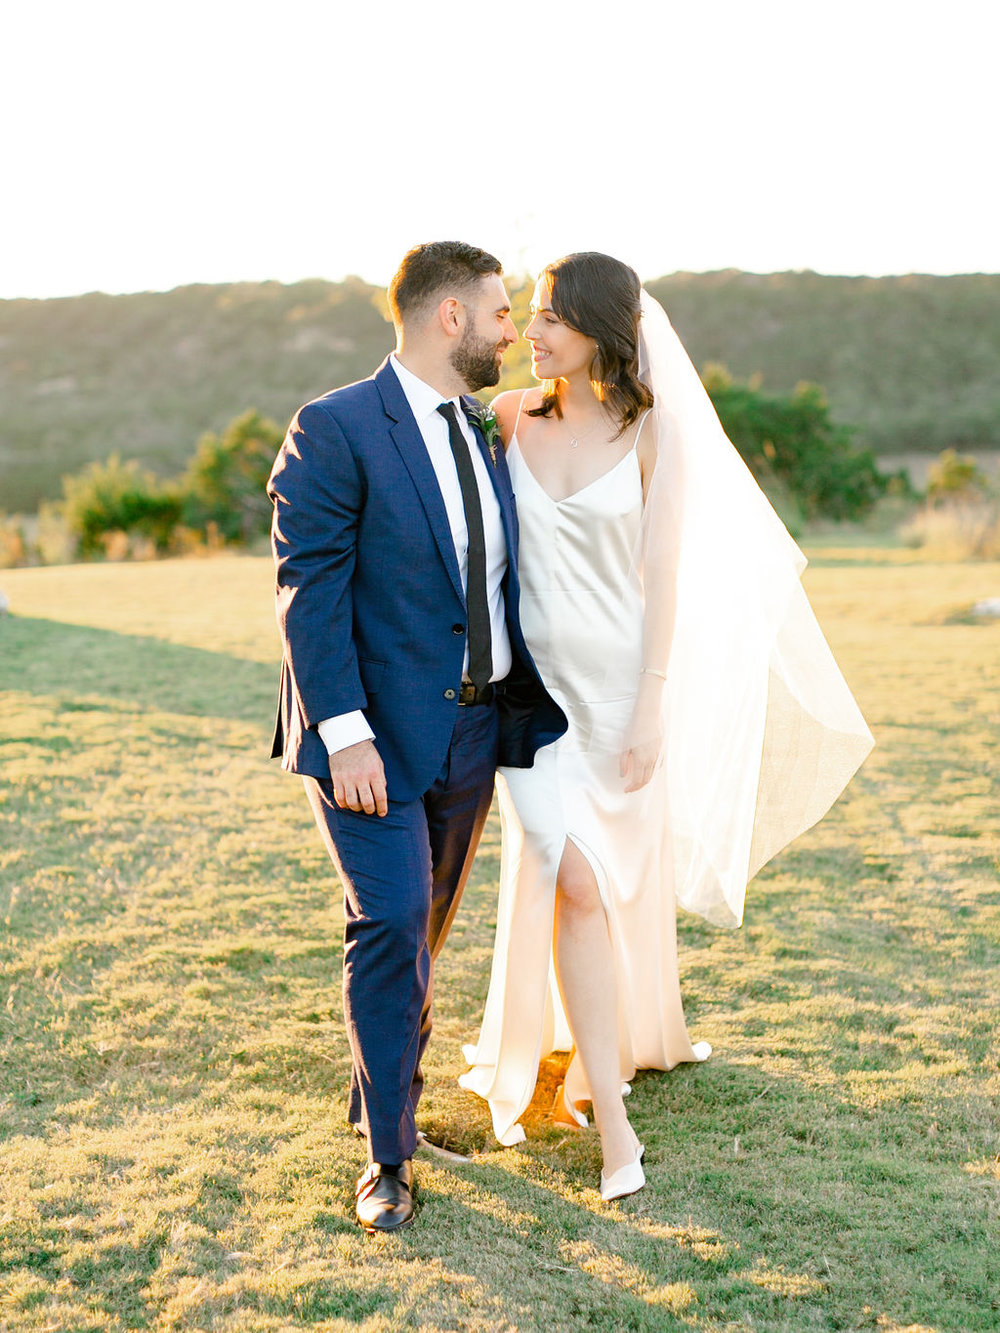 Austin-Film-Wedding-Photographer-Contigo-Ranch-Modern-103.jpg